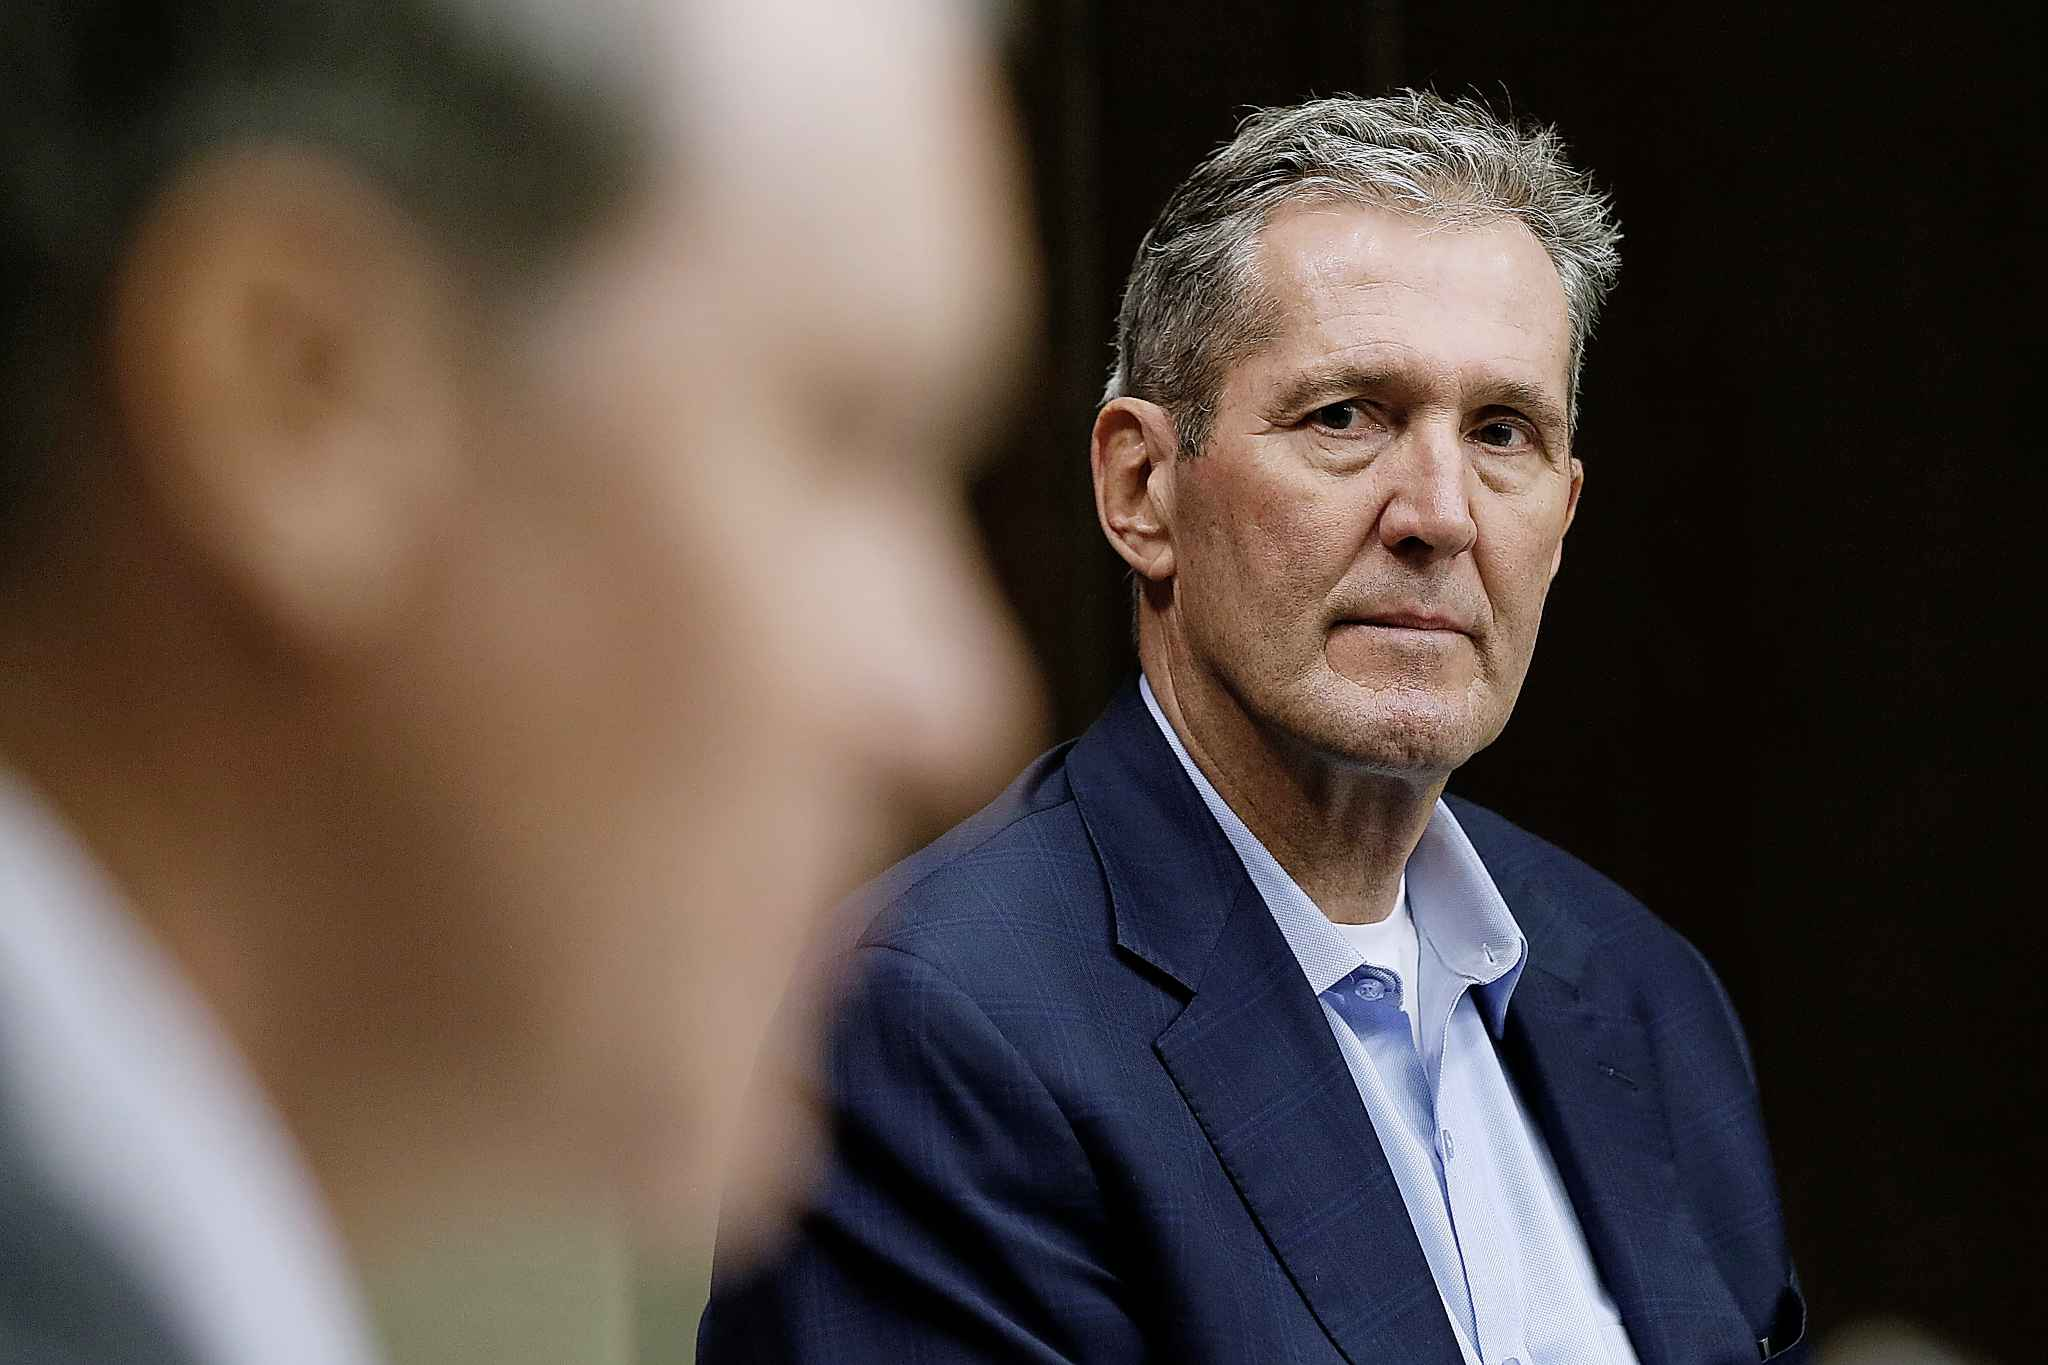 Manitoba Premier Brian Pallister (right) listens to Health Minister Cameron Friesen during a COVID-19 press conference at the Manitoba legislature in March.